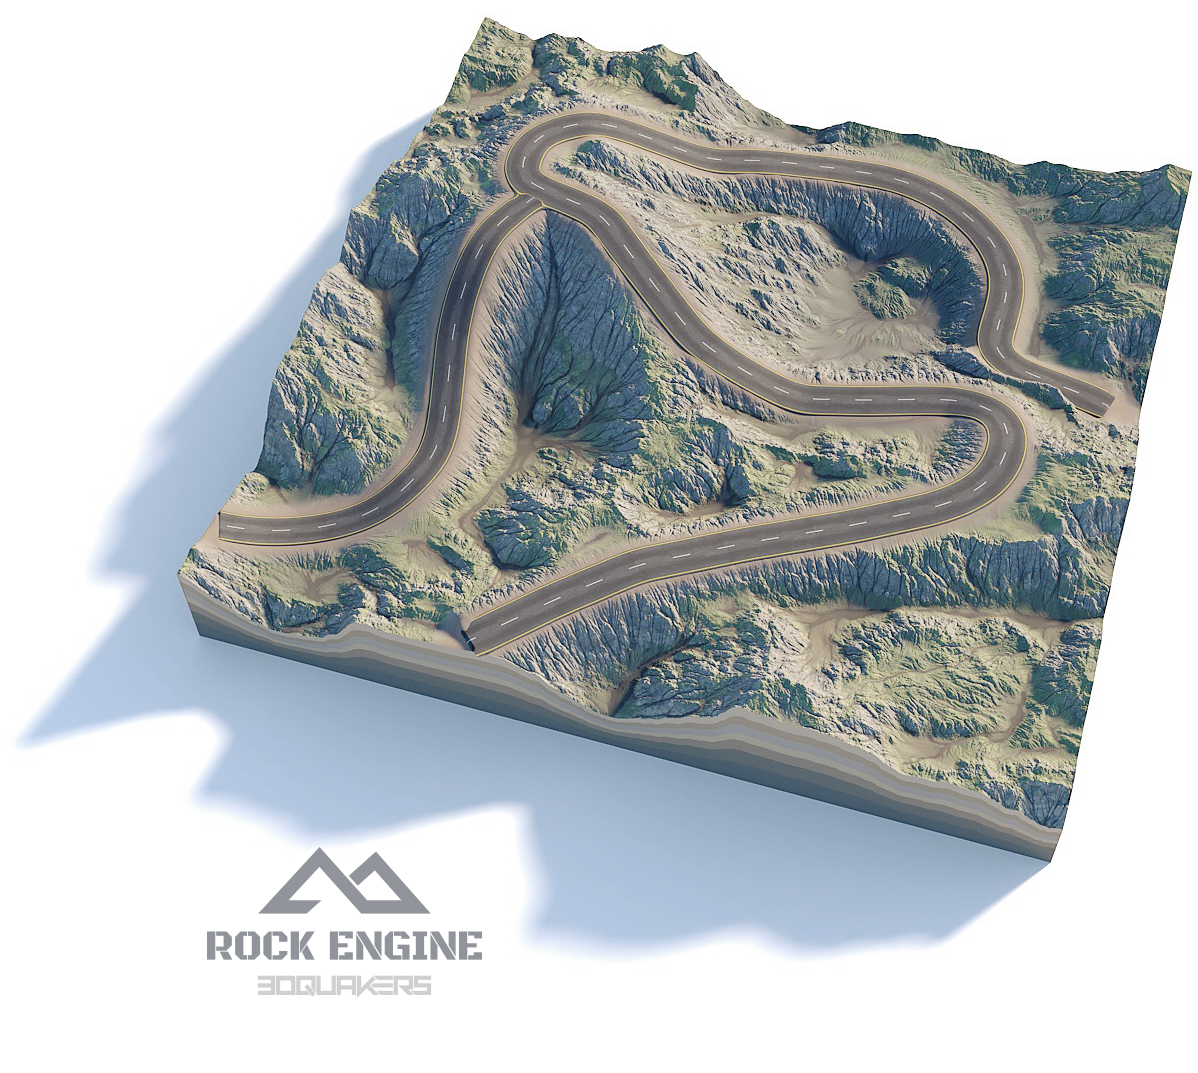 ROCK ENGINE PRODUCT PAGE - 3DQUAKERS